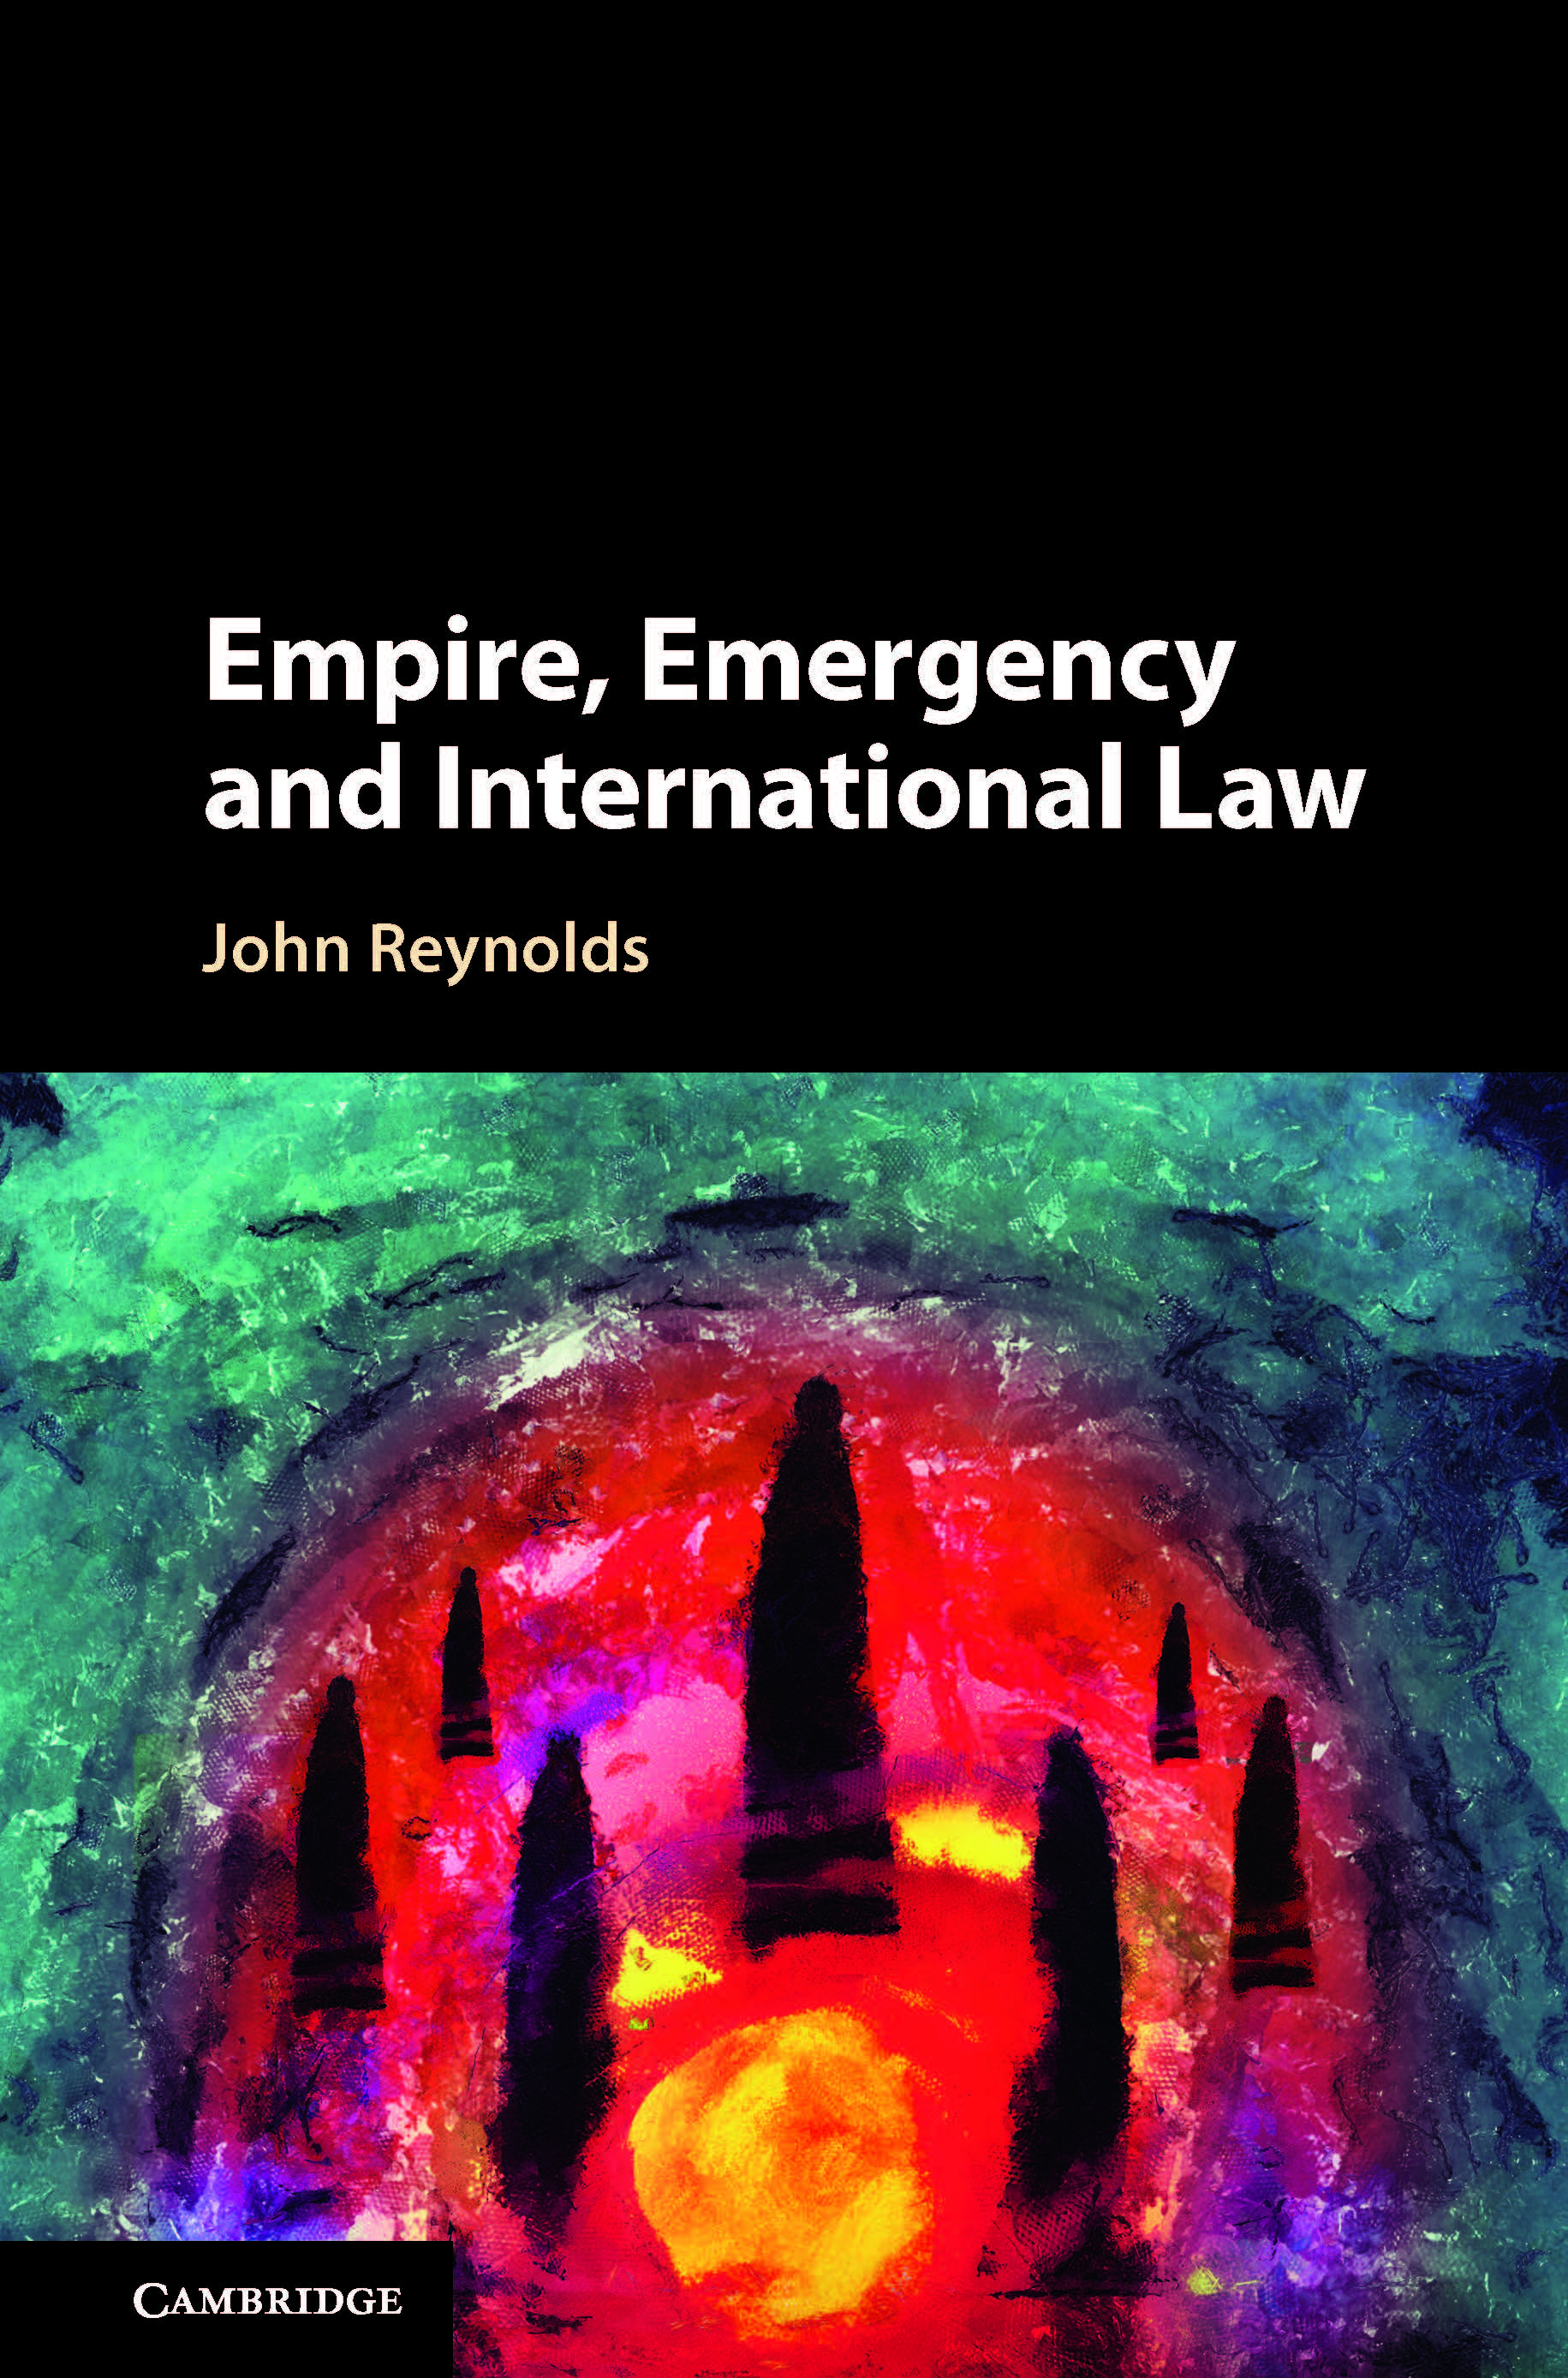 Empire, Emergency and International Law by Dr John Reynolds